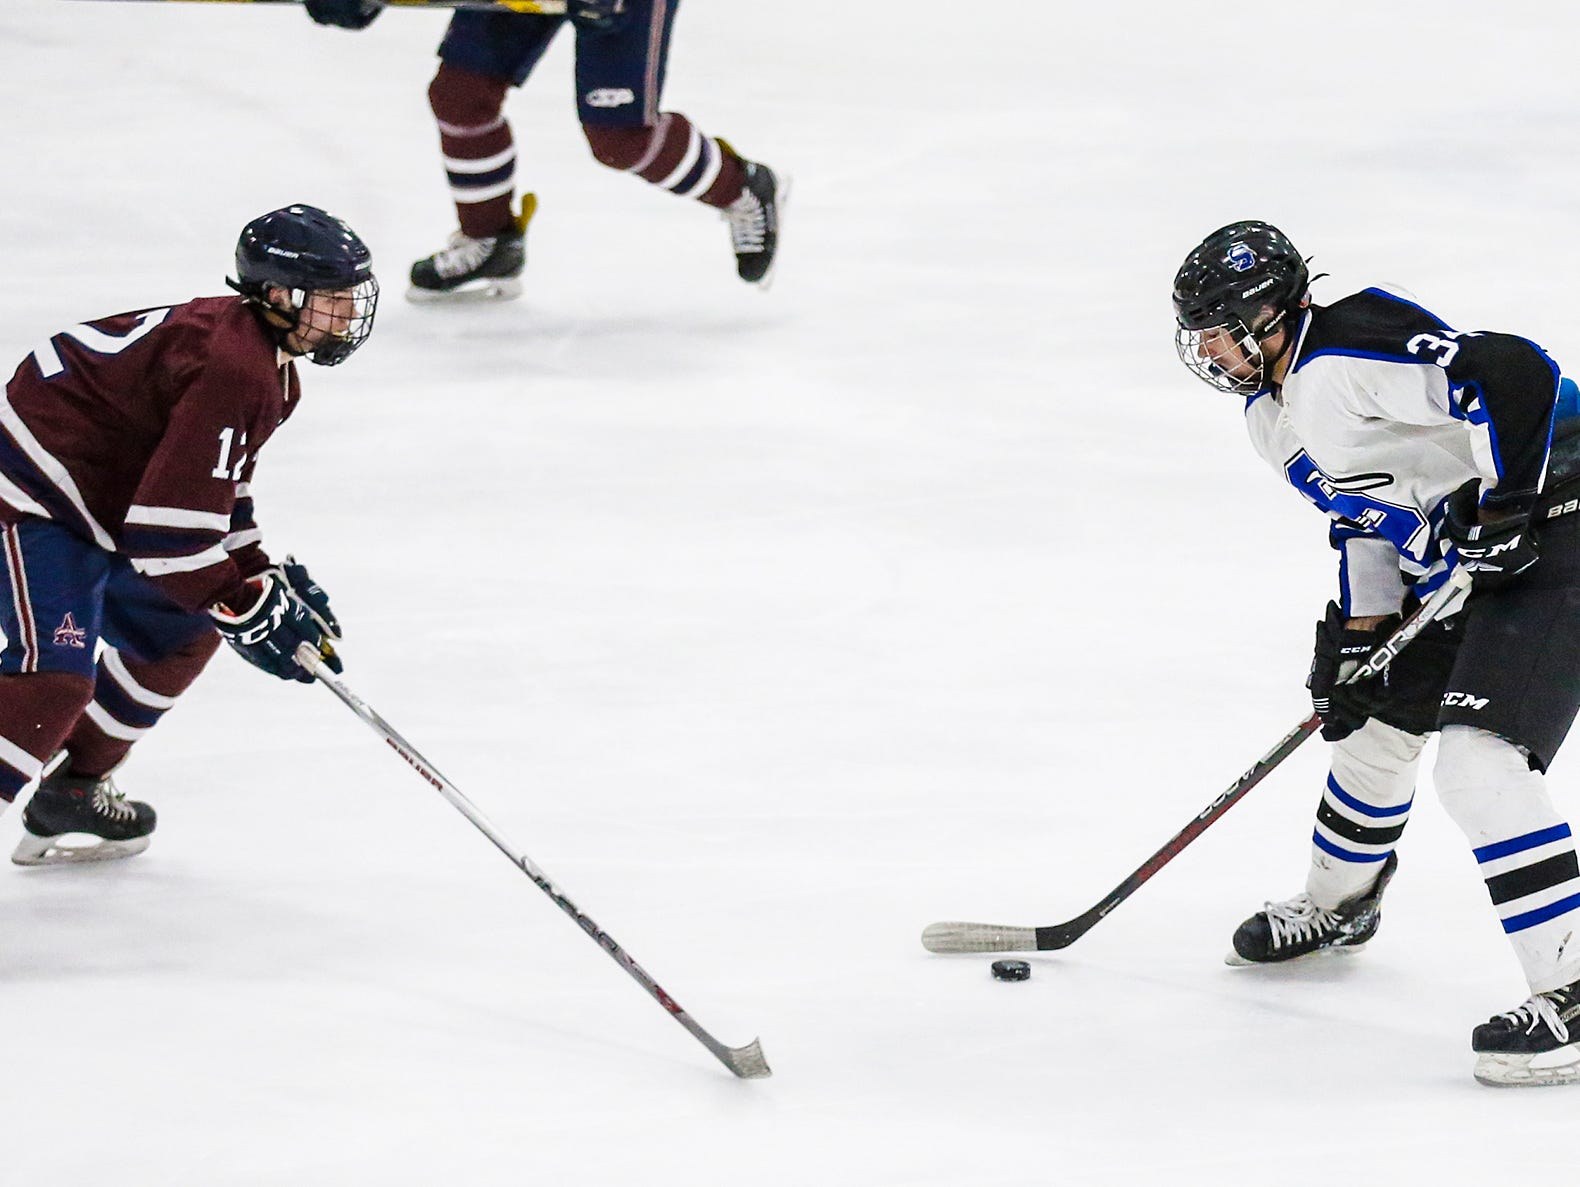 St. Mary's Springs Academy co-op hockey's Cade Sabel tries to get past Appleton United's Trevor Tomada during their game Thursday, November 29, 2018 played in Fond du Lac. Springs won the game 8-1. Doug Raflik/USA TODAY NETWORK-Wisconsin